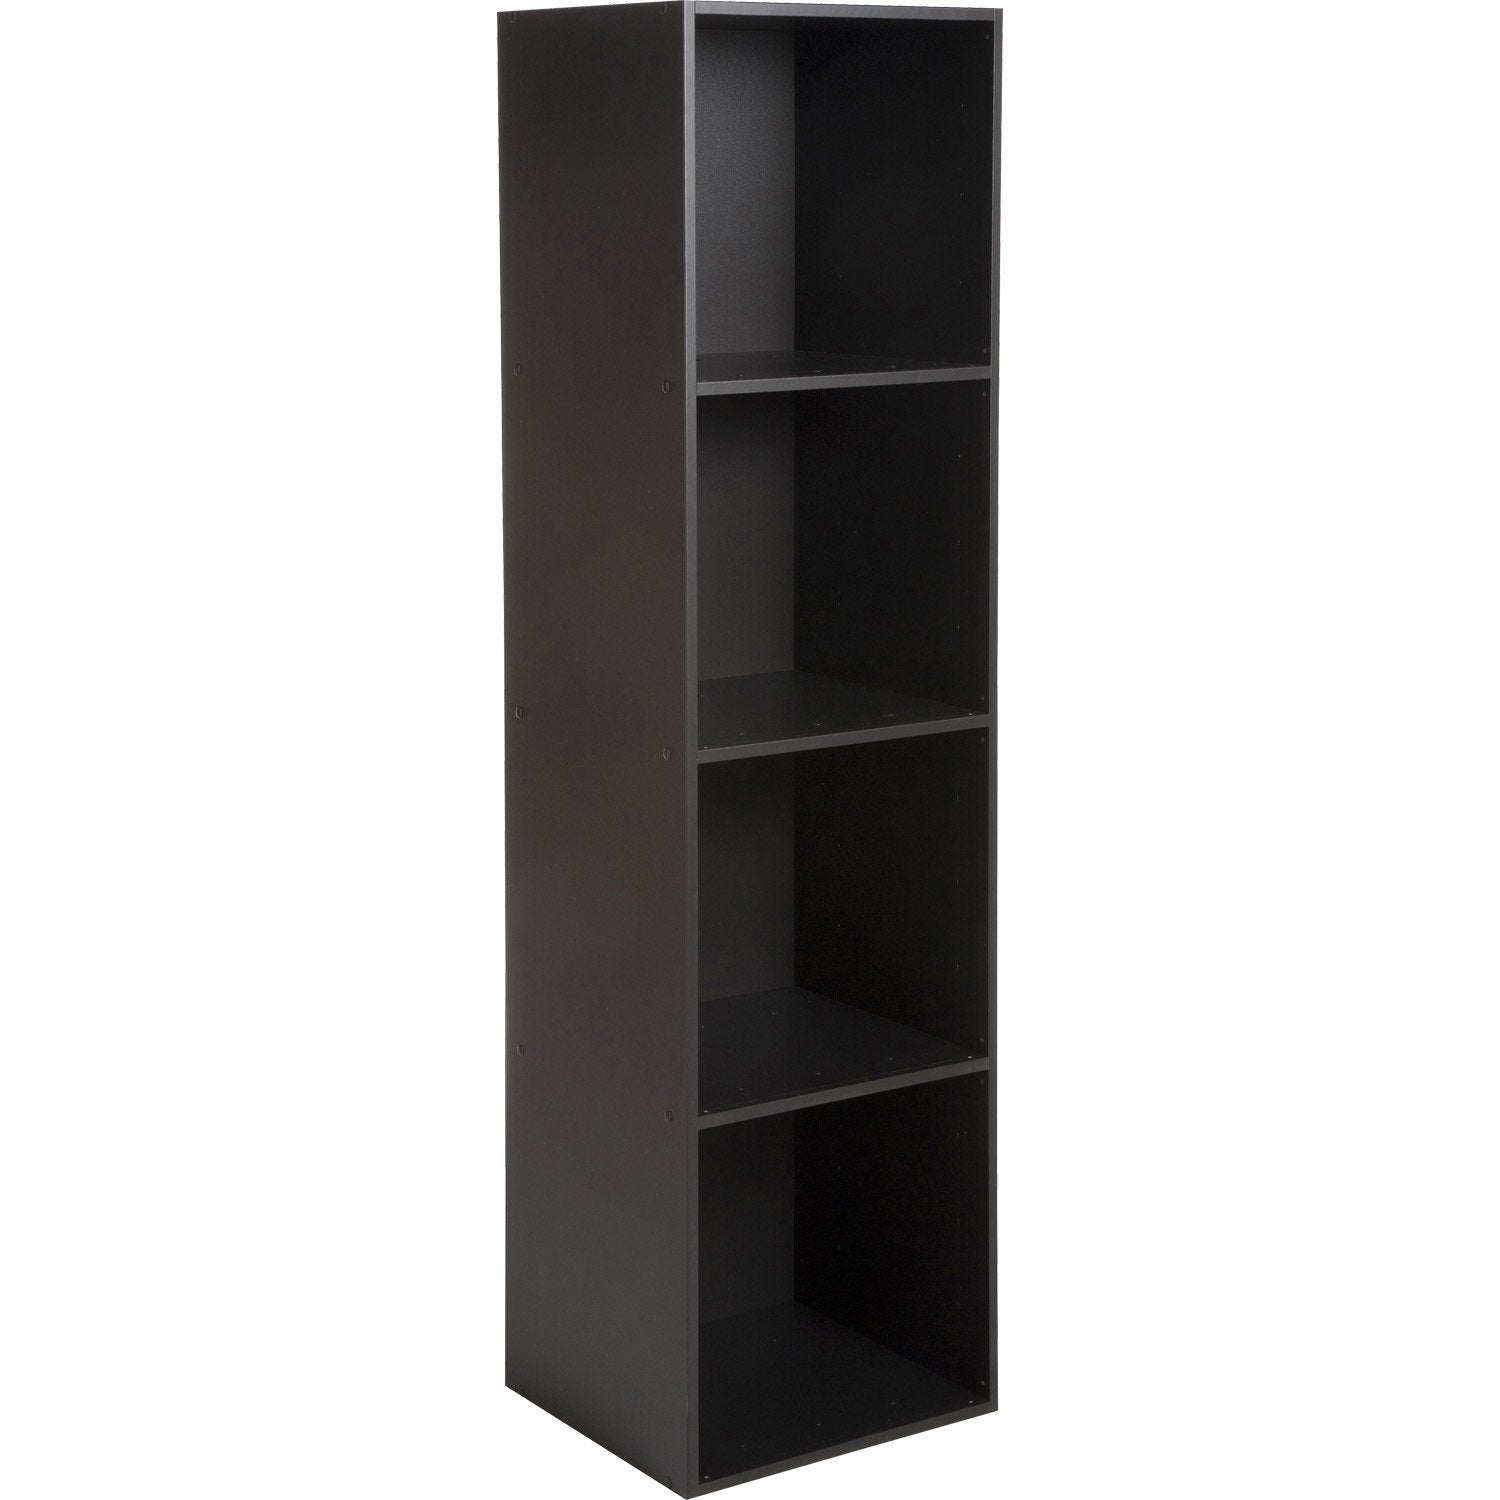 Etag re 4 cases multikaz noir x x - Meuble etagere noir ...